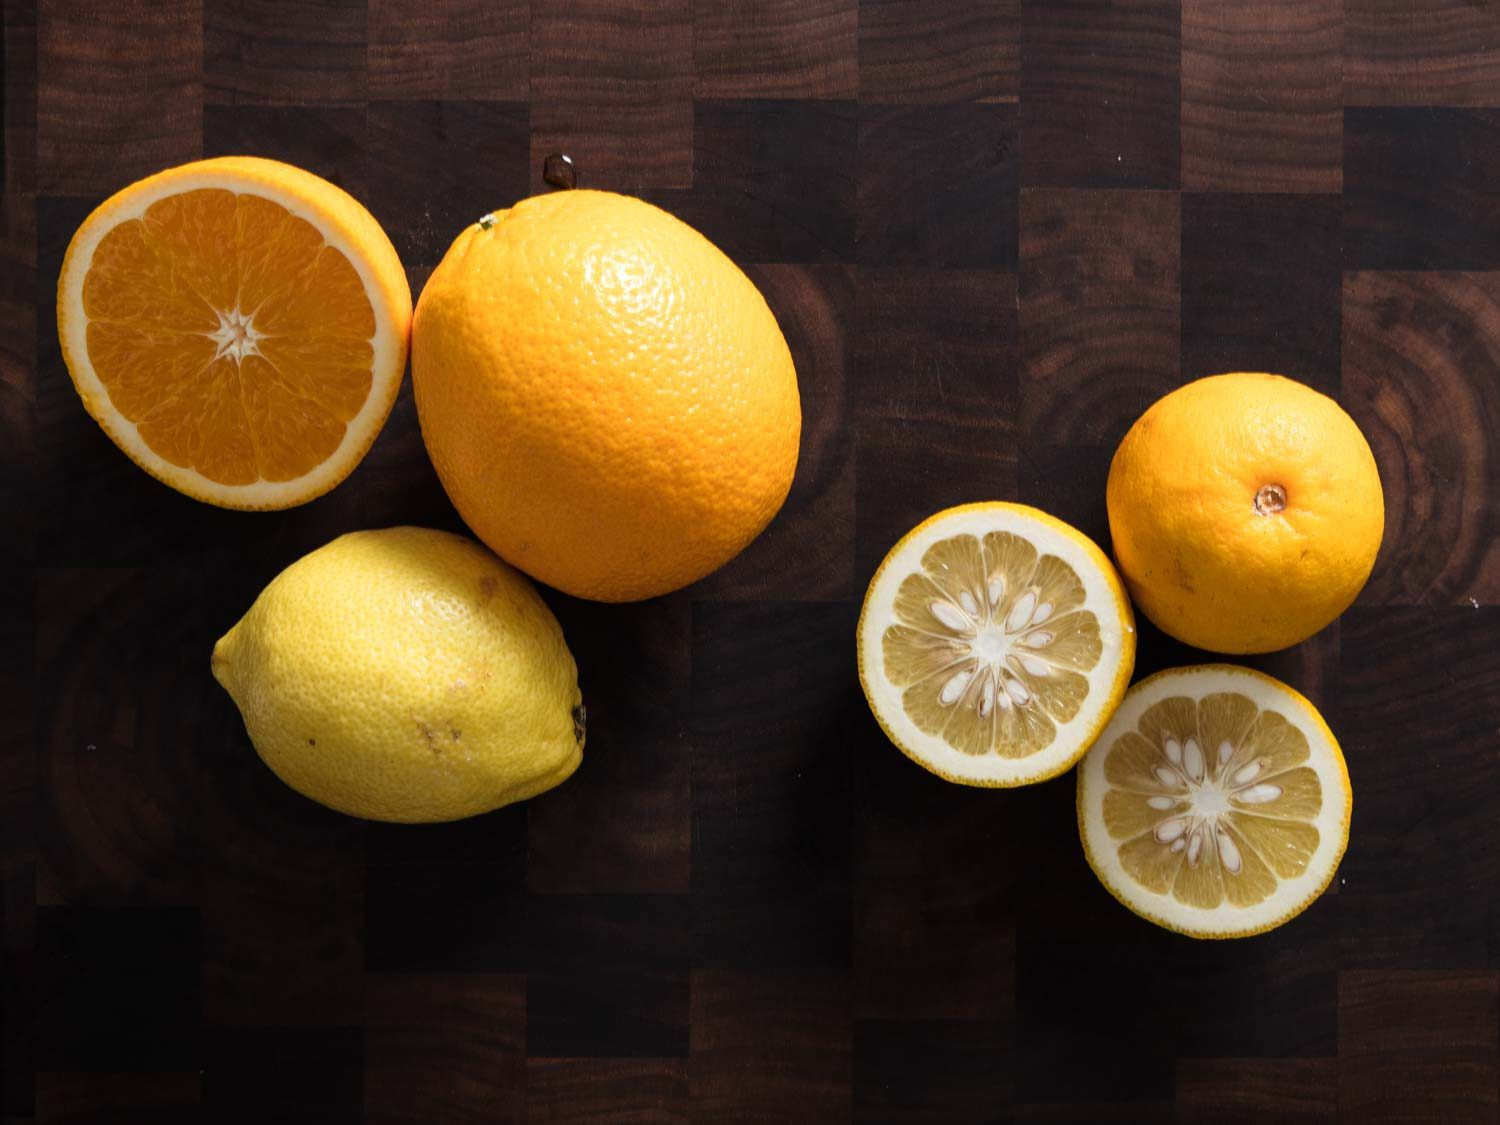 Comparing traditional bitter oranges to lemon-and-navel orange combination